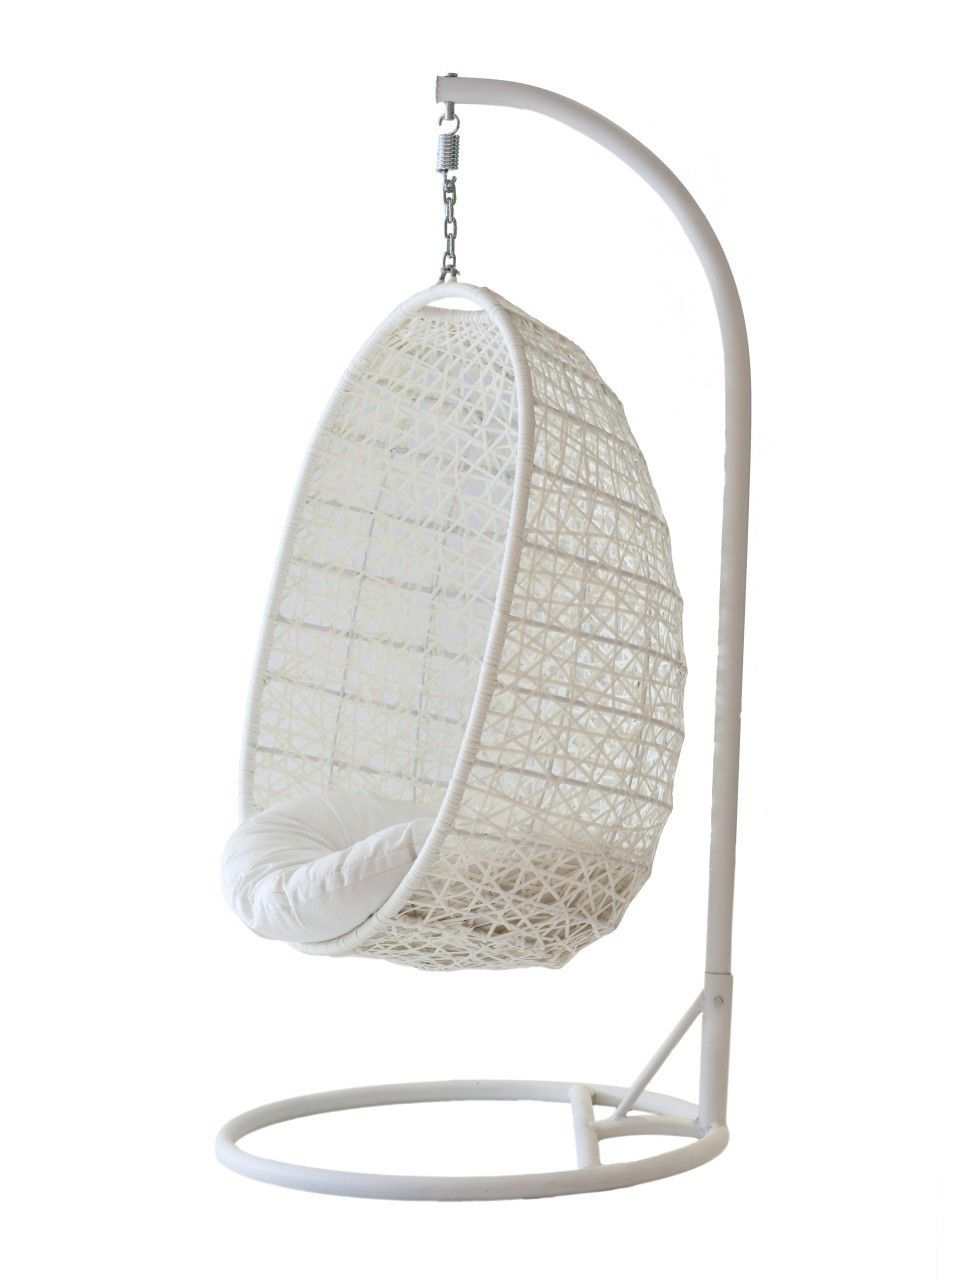 Affordable Hanging Chair For Bedroom Ikea Cool Hanging Chairs For Indoor  And Within Ikea Bedroom At Hanging Chairs For Bedrooms